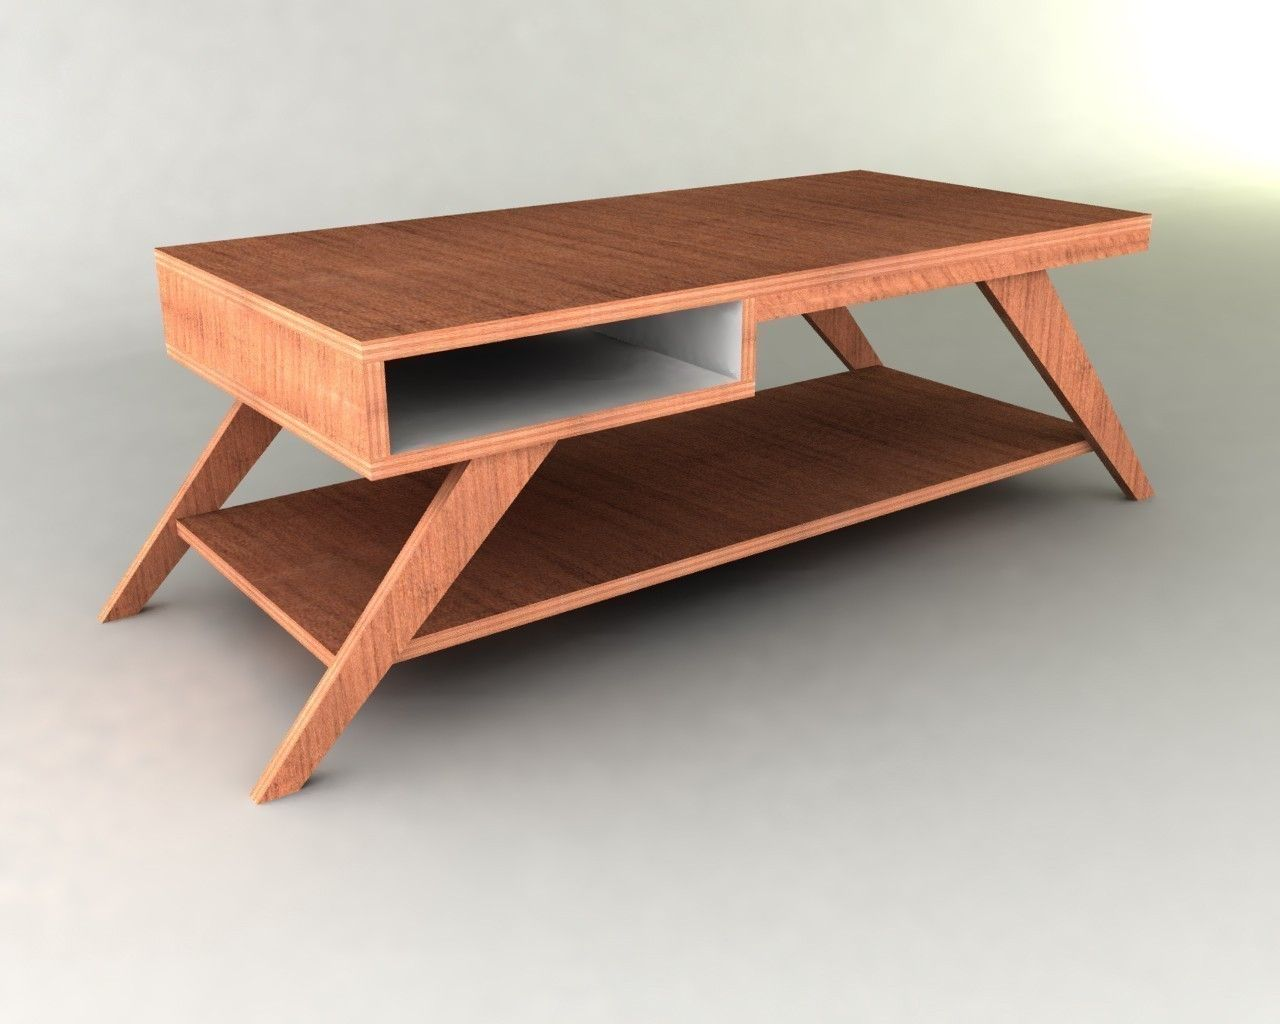 Awesome Modern Coffee Table Wooden Style Arts Design Ideas Table Furniture Plans Coffee Table Furniture Retro Furniture [ 1024 x 1280 Pixel ]